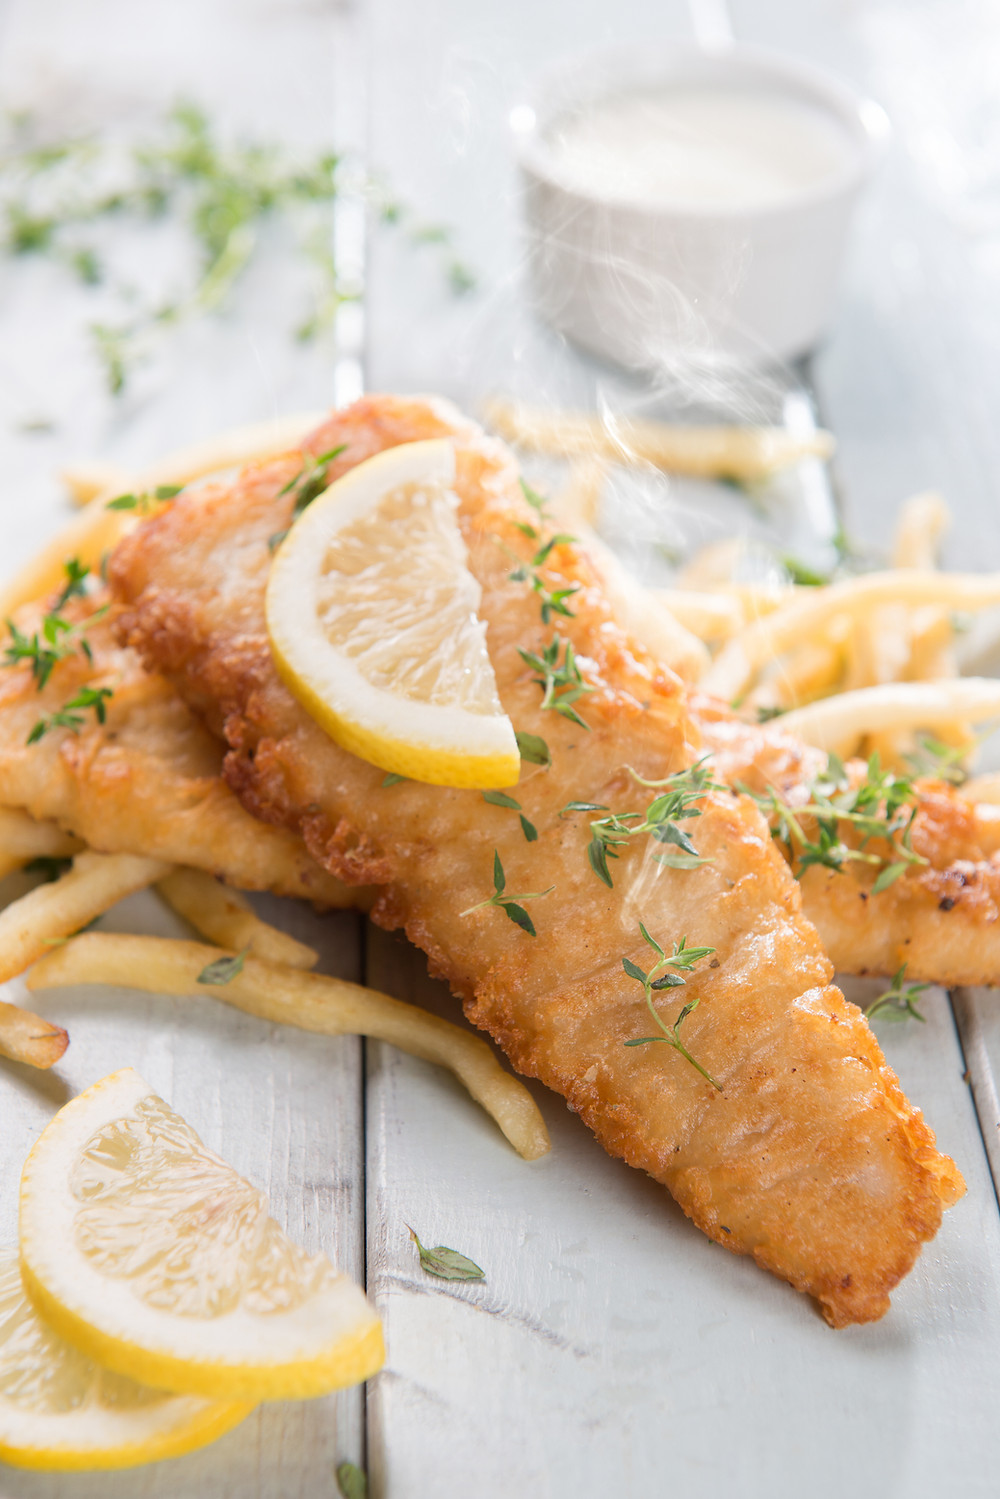 Deep fried and battered fish, chips and a slice of lemon